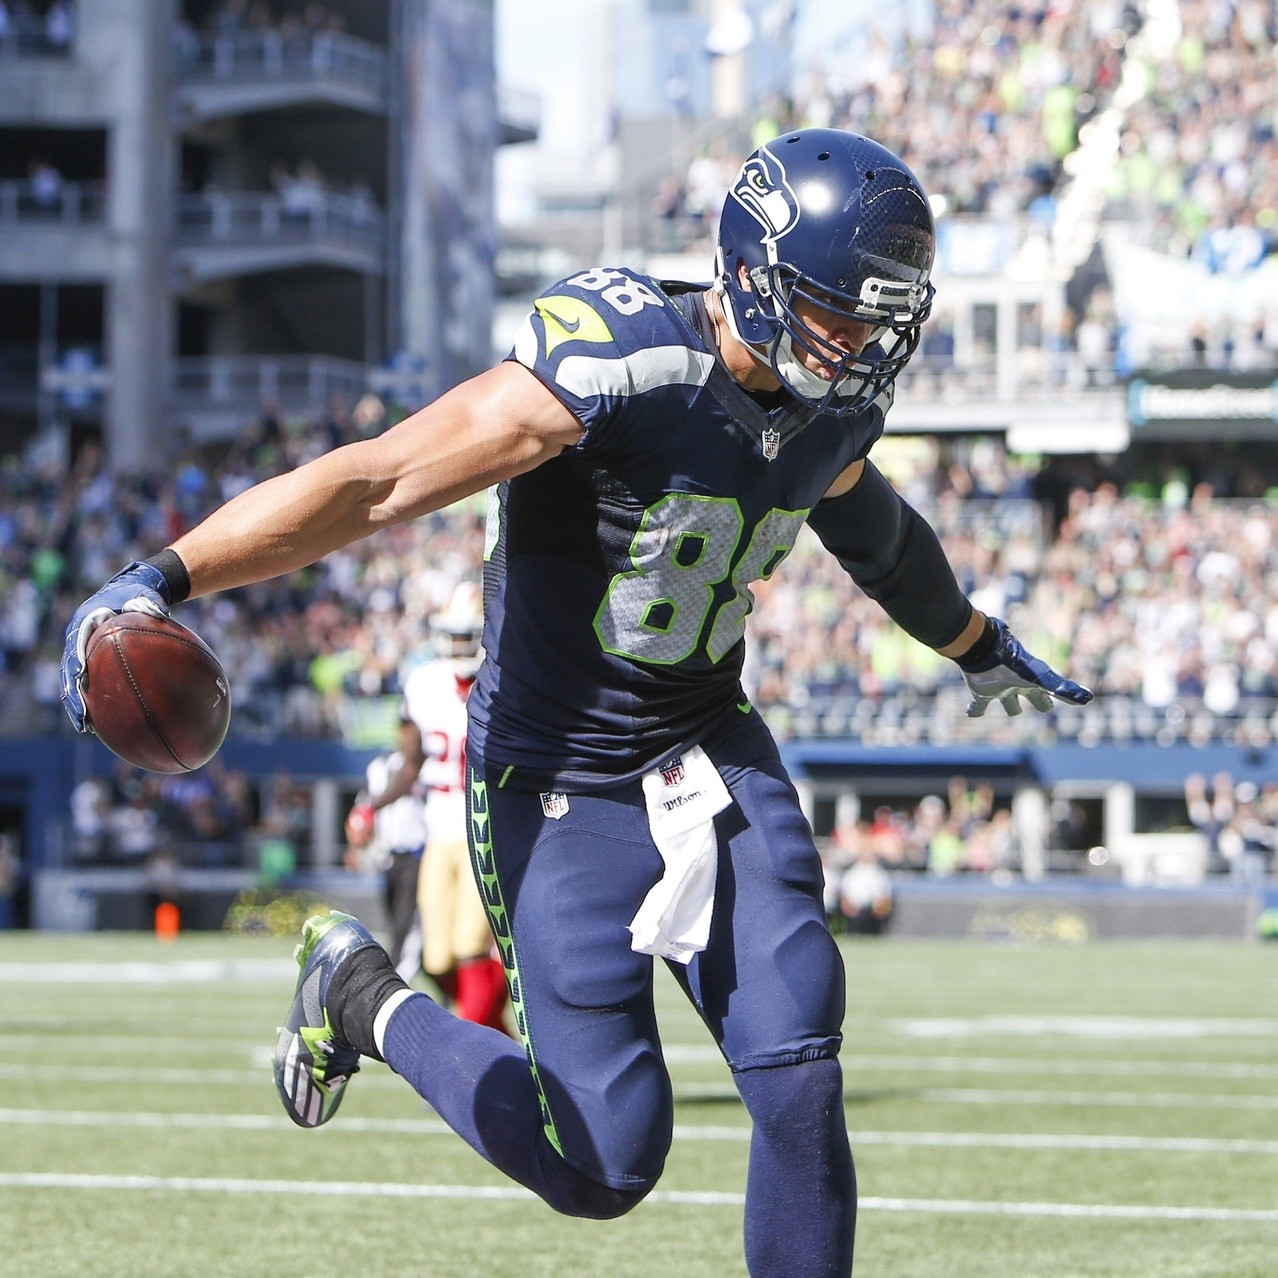 Jimmy-graham-is-the-nfls-next-great-comeback-story-1477605838.jpg?crop=0